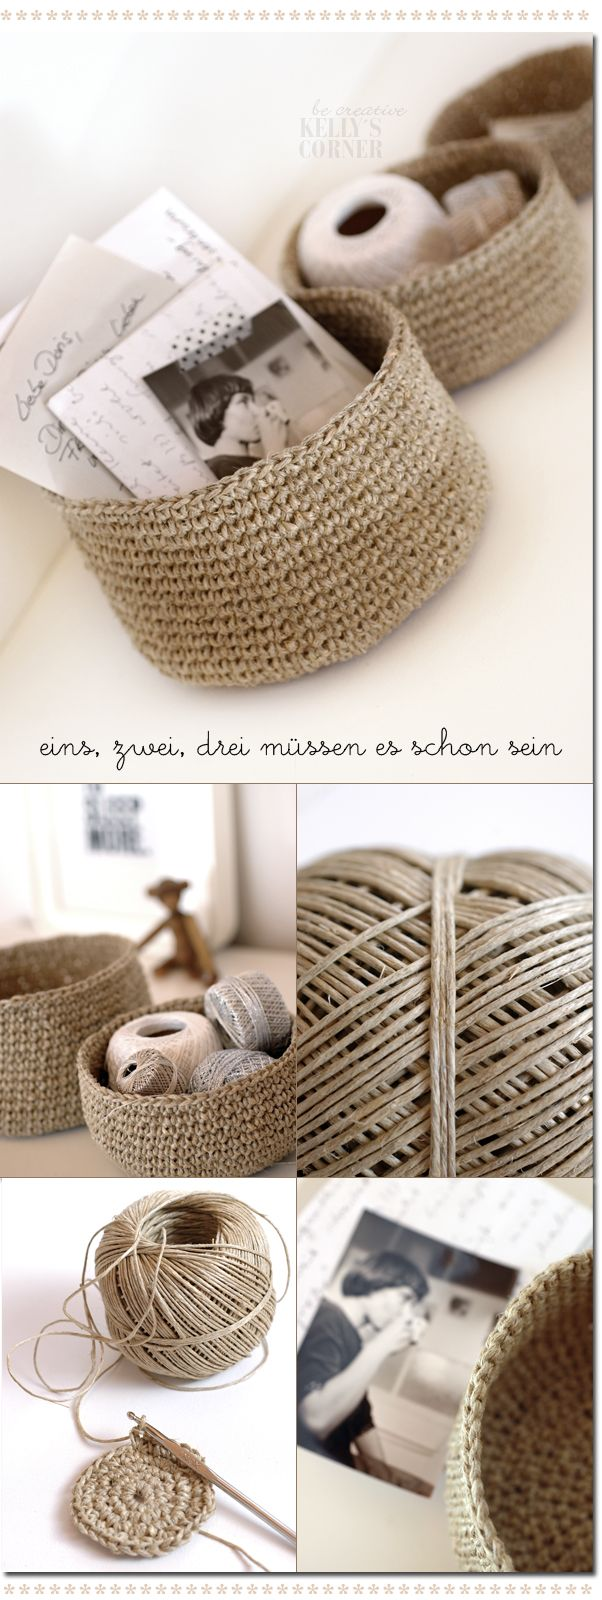 baskets from packing twine